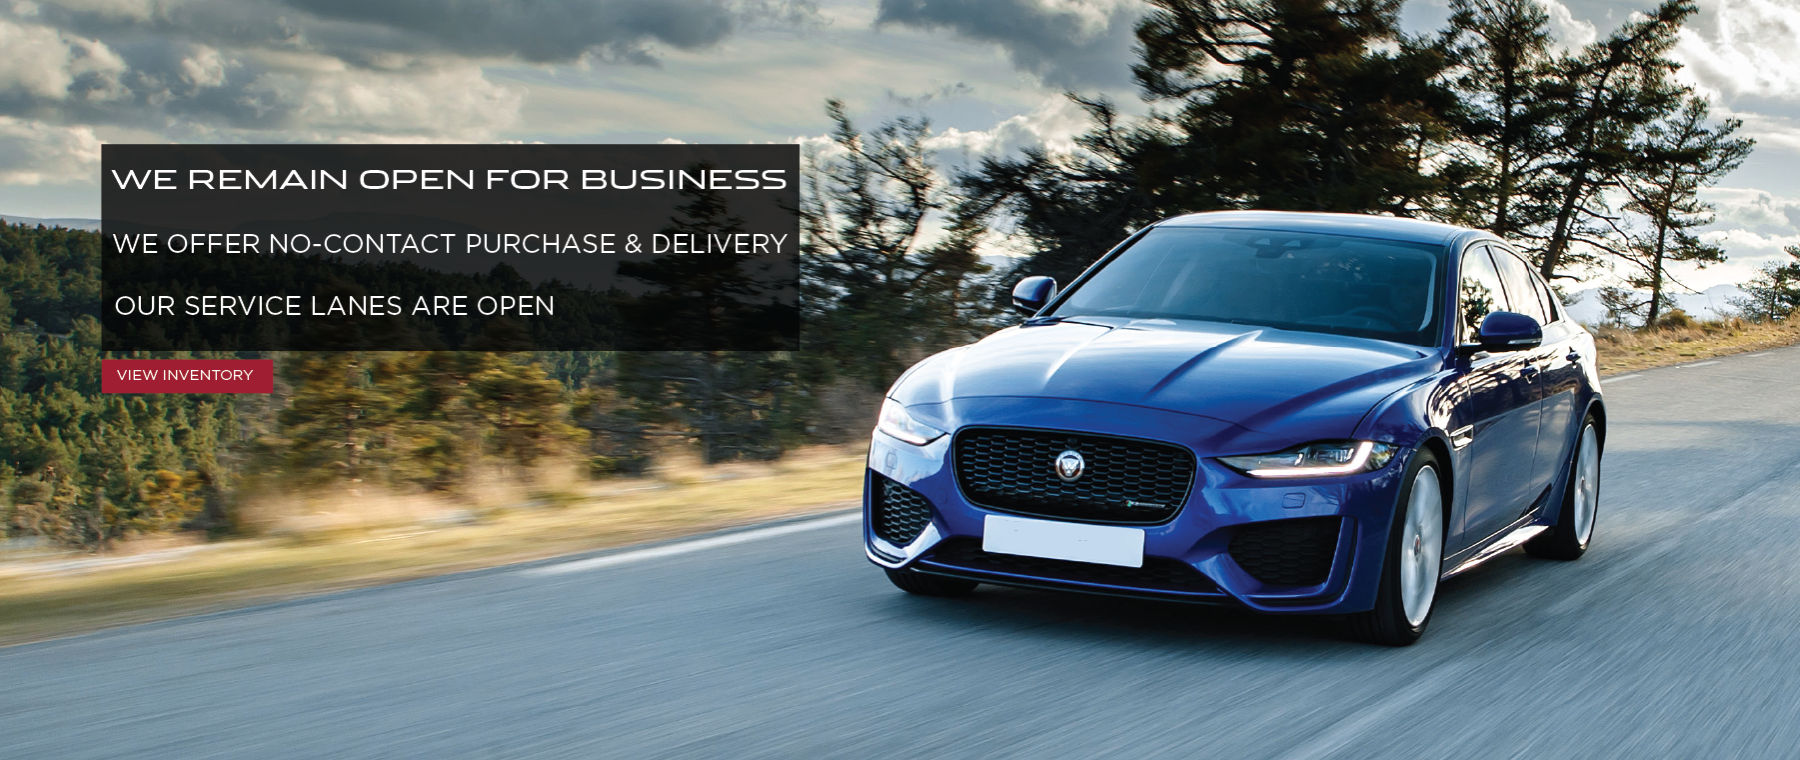 Blue 2020 Jaguar XE on road near trees, We are open. Click to view inventory.